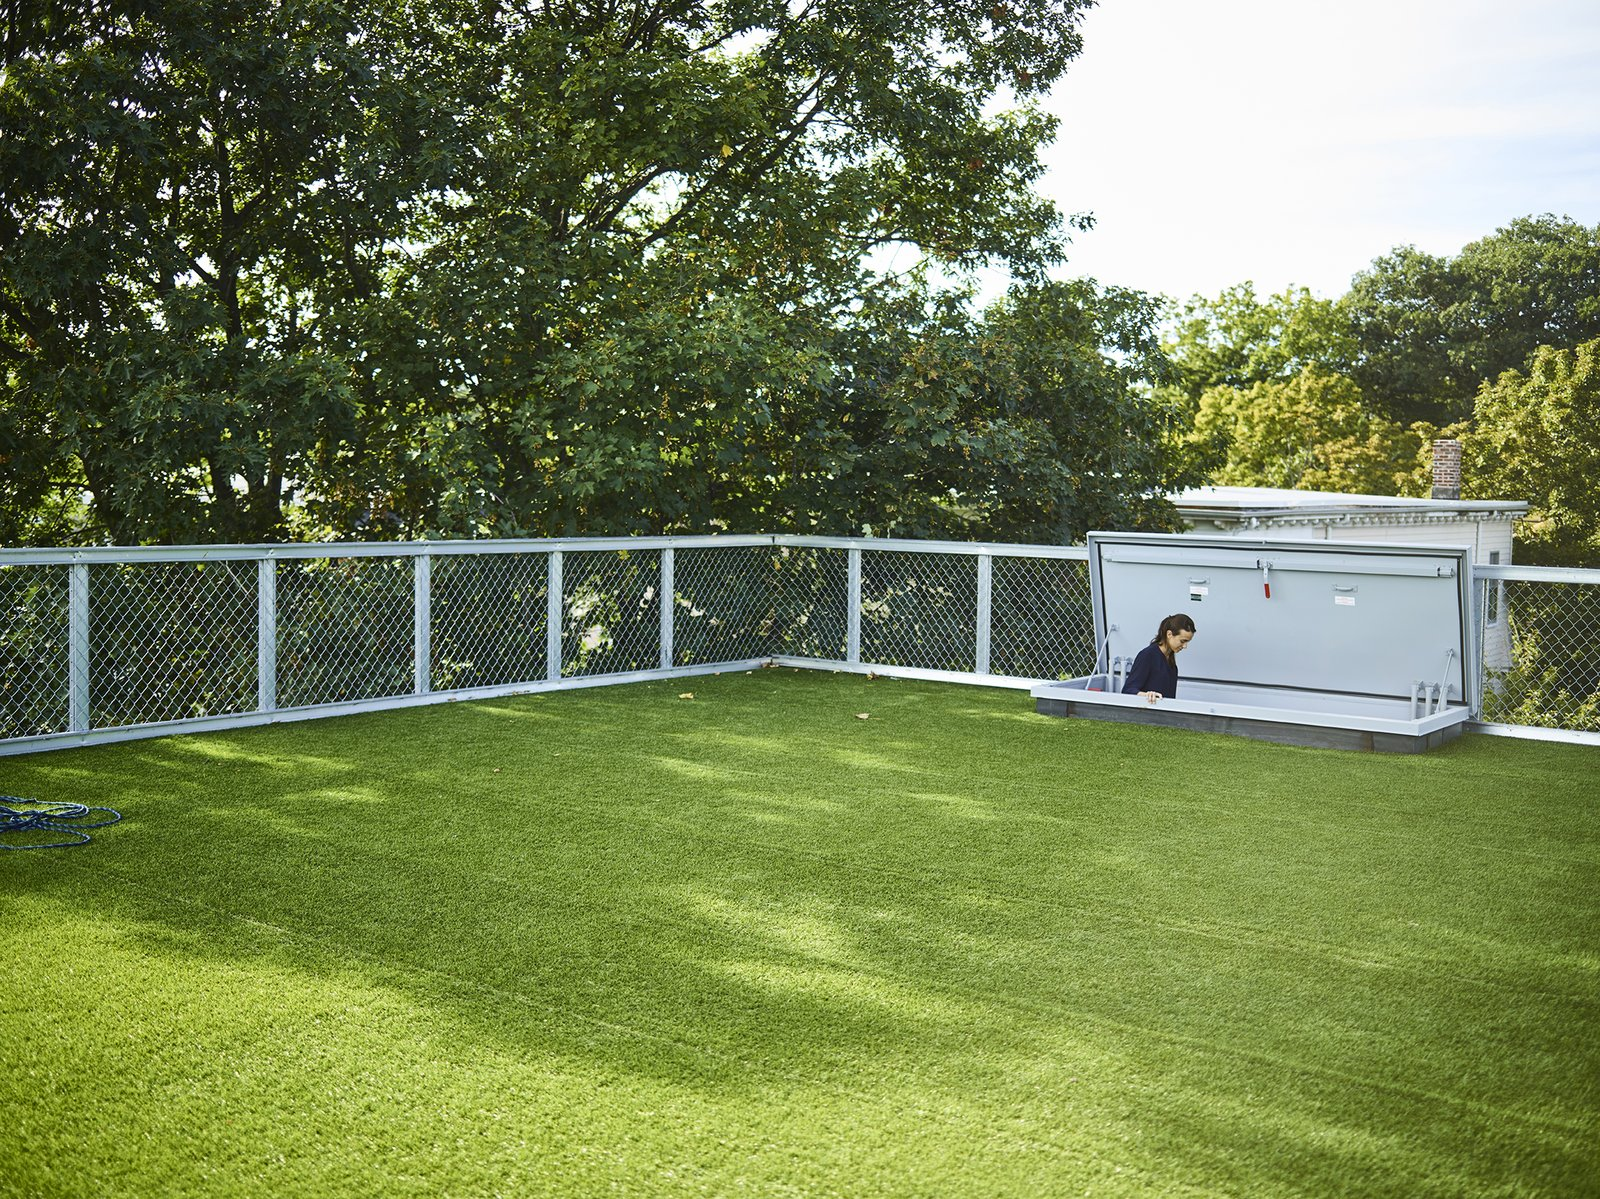 A hatch door leads to the roof deck, which is lined with artificial turf.